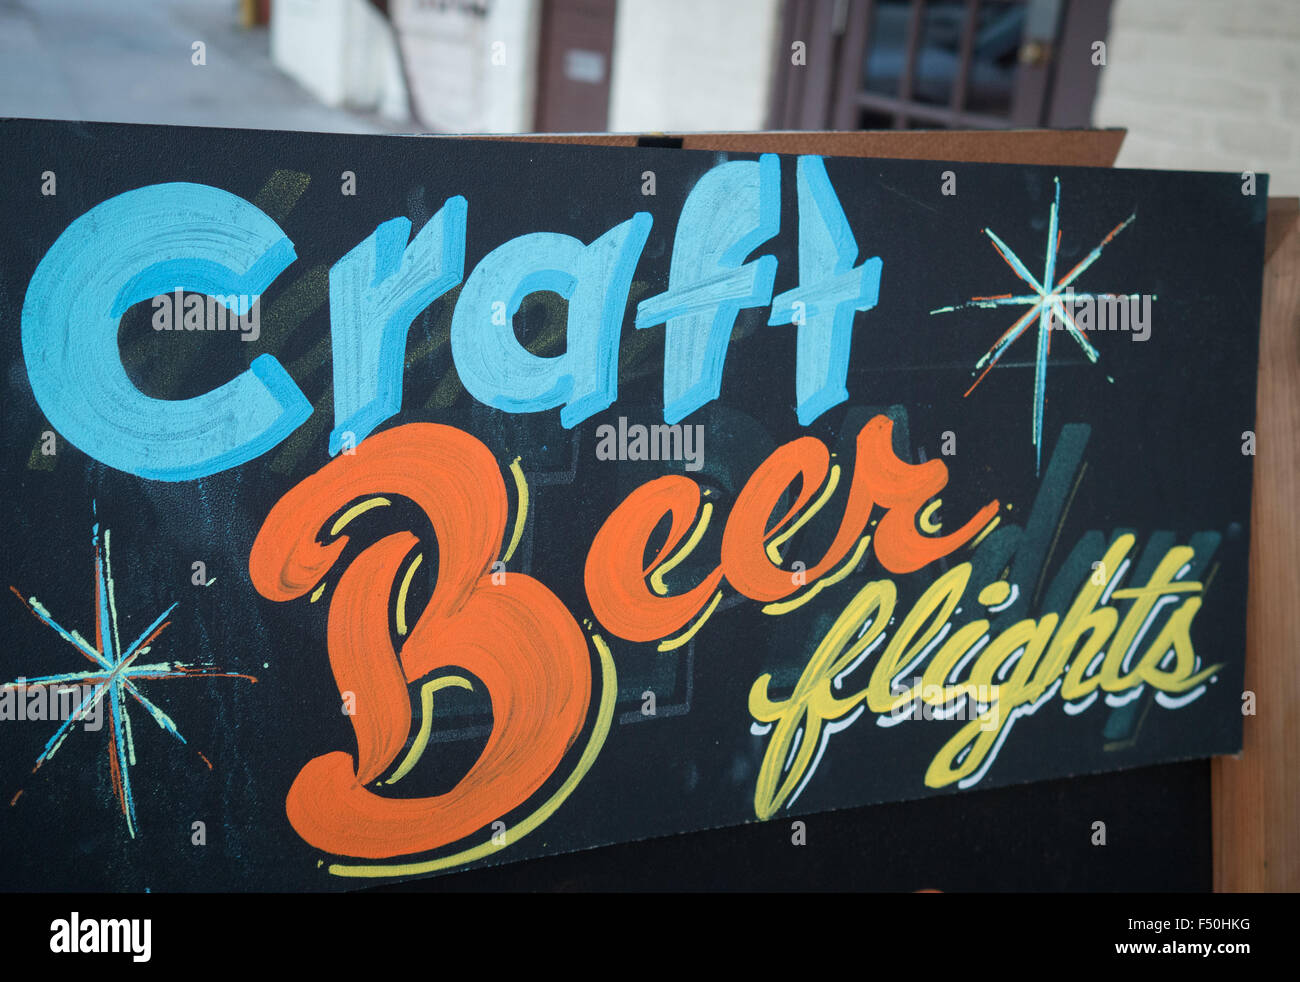 Craft beer flights sign outside of a bar in Austin, Texas - Stock Image